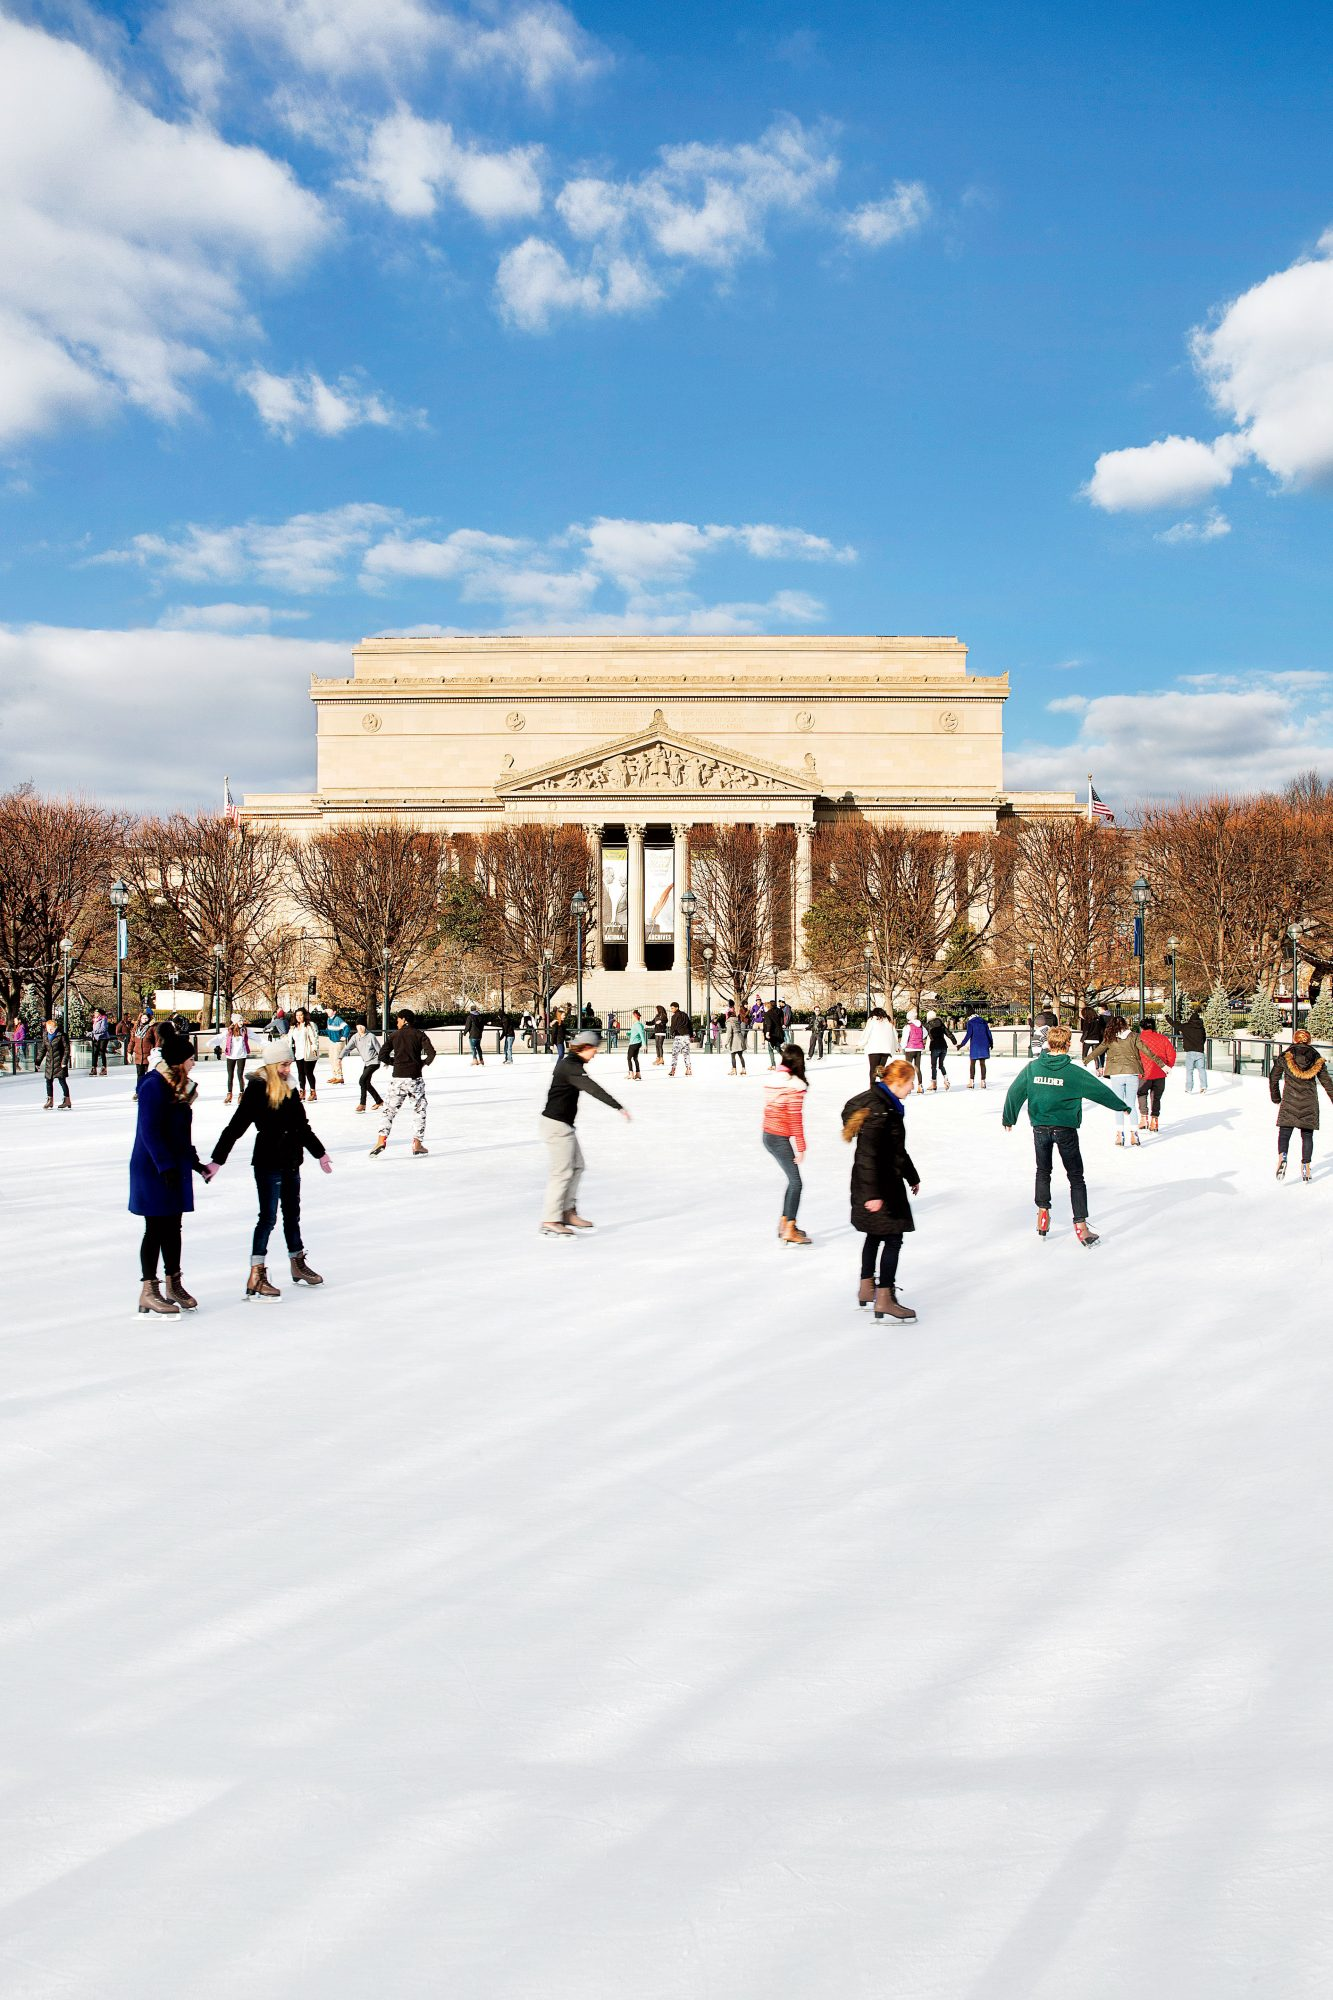 National Gallery of Art Sculpture Garden Ice Rink in Washington, DC